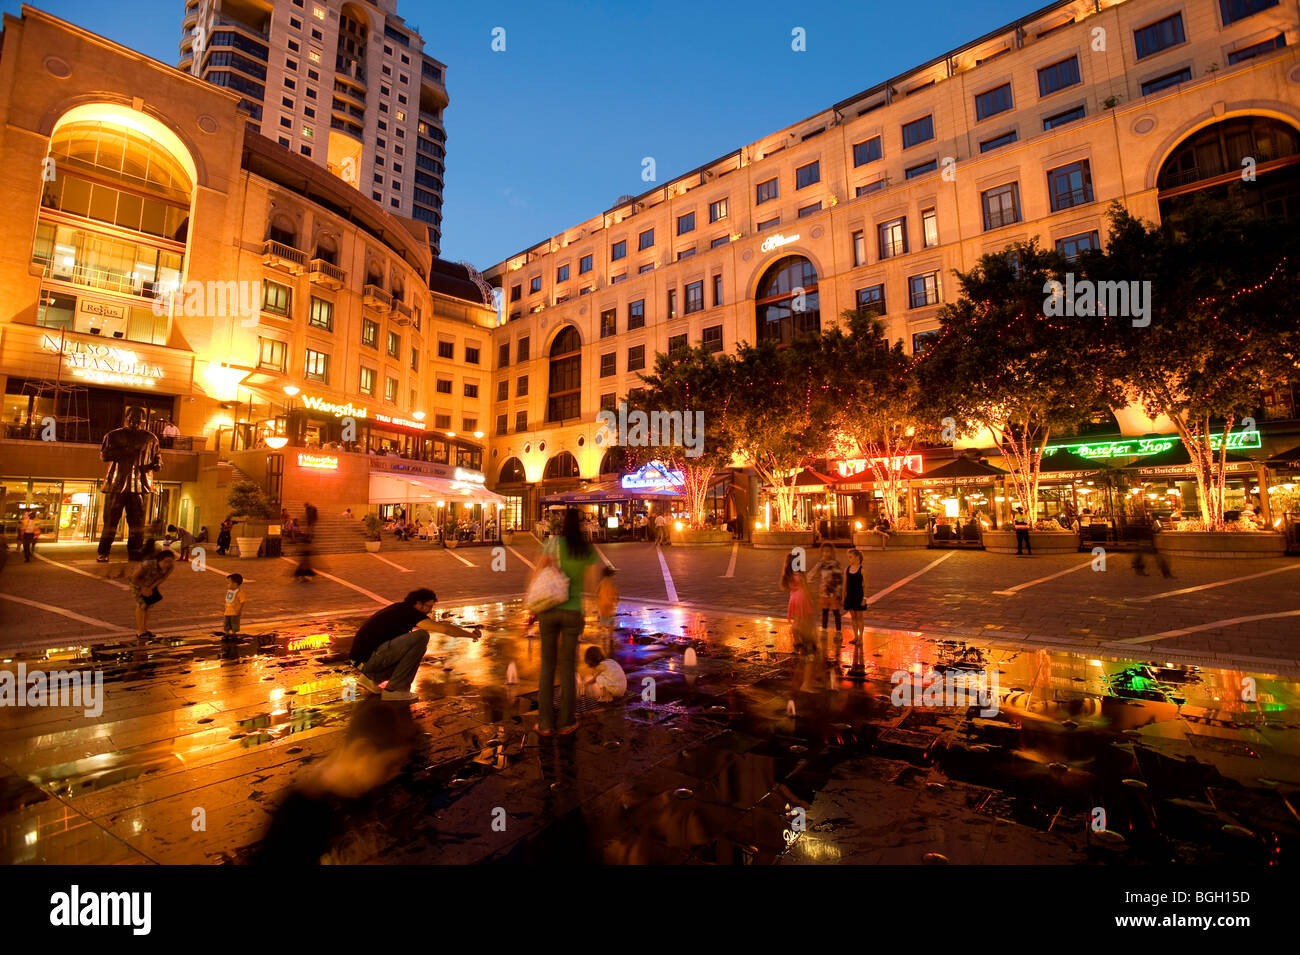 Nelson Mandela Square in the evening. Sandton, Johannesburg, South Africa - Stock Image